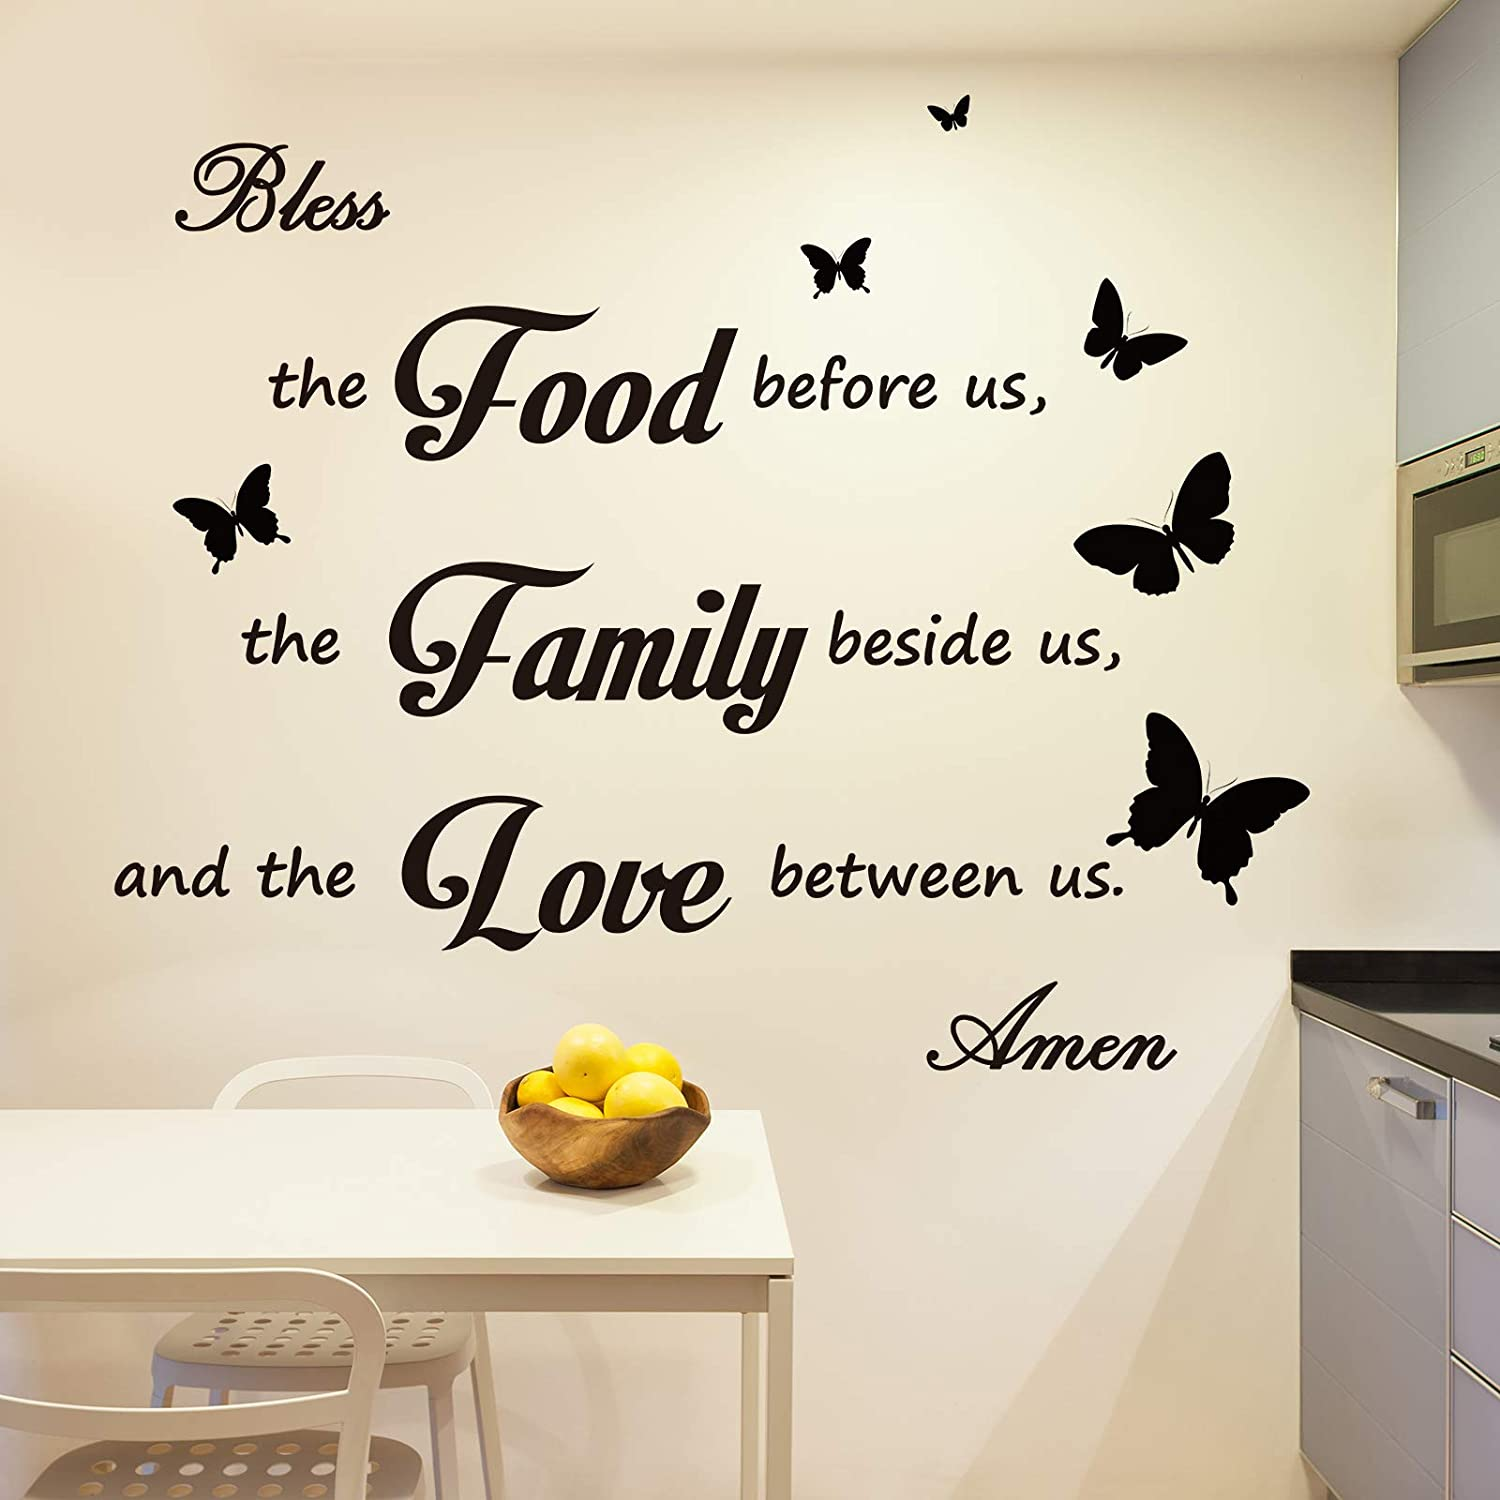 Outus Dinner Prayer Wall Decor Decal Meal Prayer Wall Decor Kitchen Prayer Stickers Bless The Food Before Us Sign Wall Sticker Quote Decal Stickers for Home Decorations Kitchen Dining Room